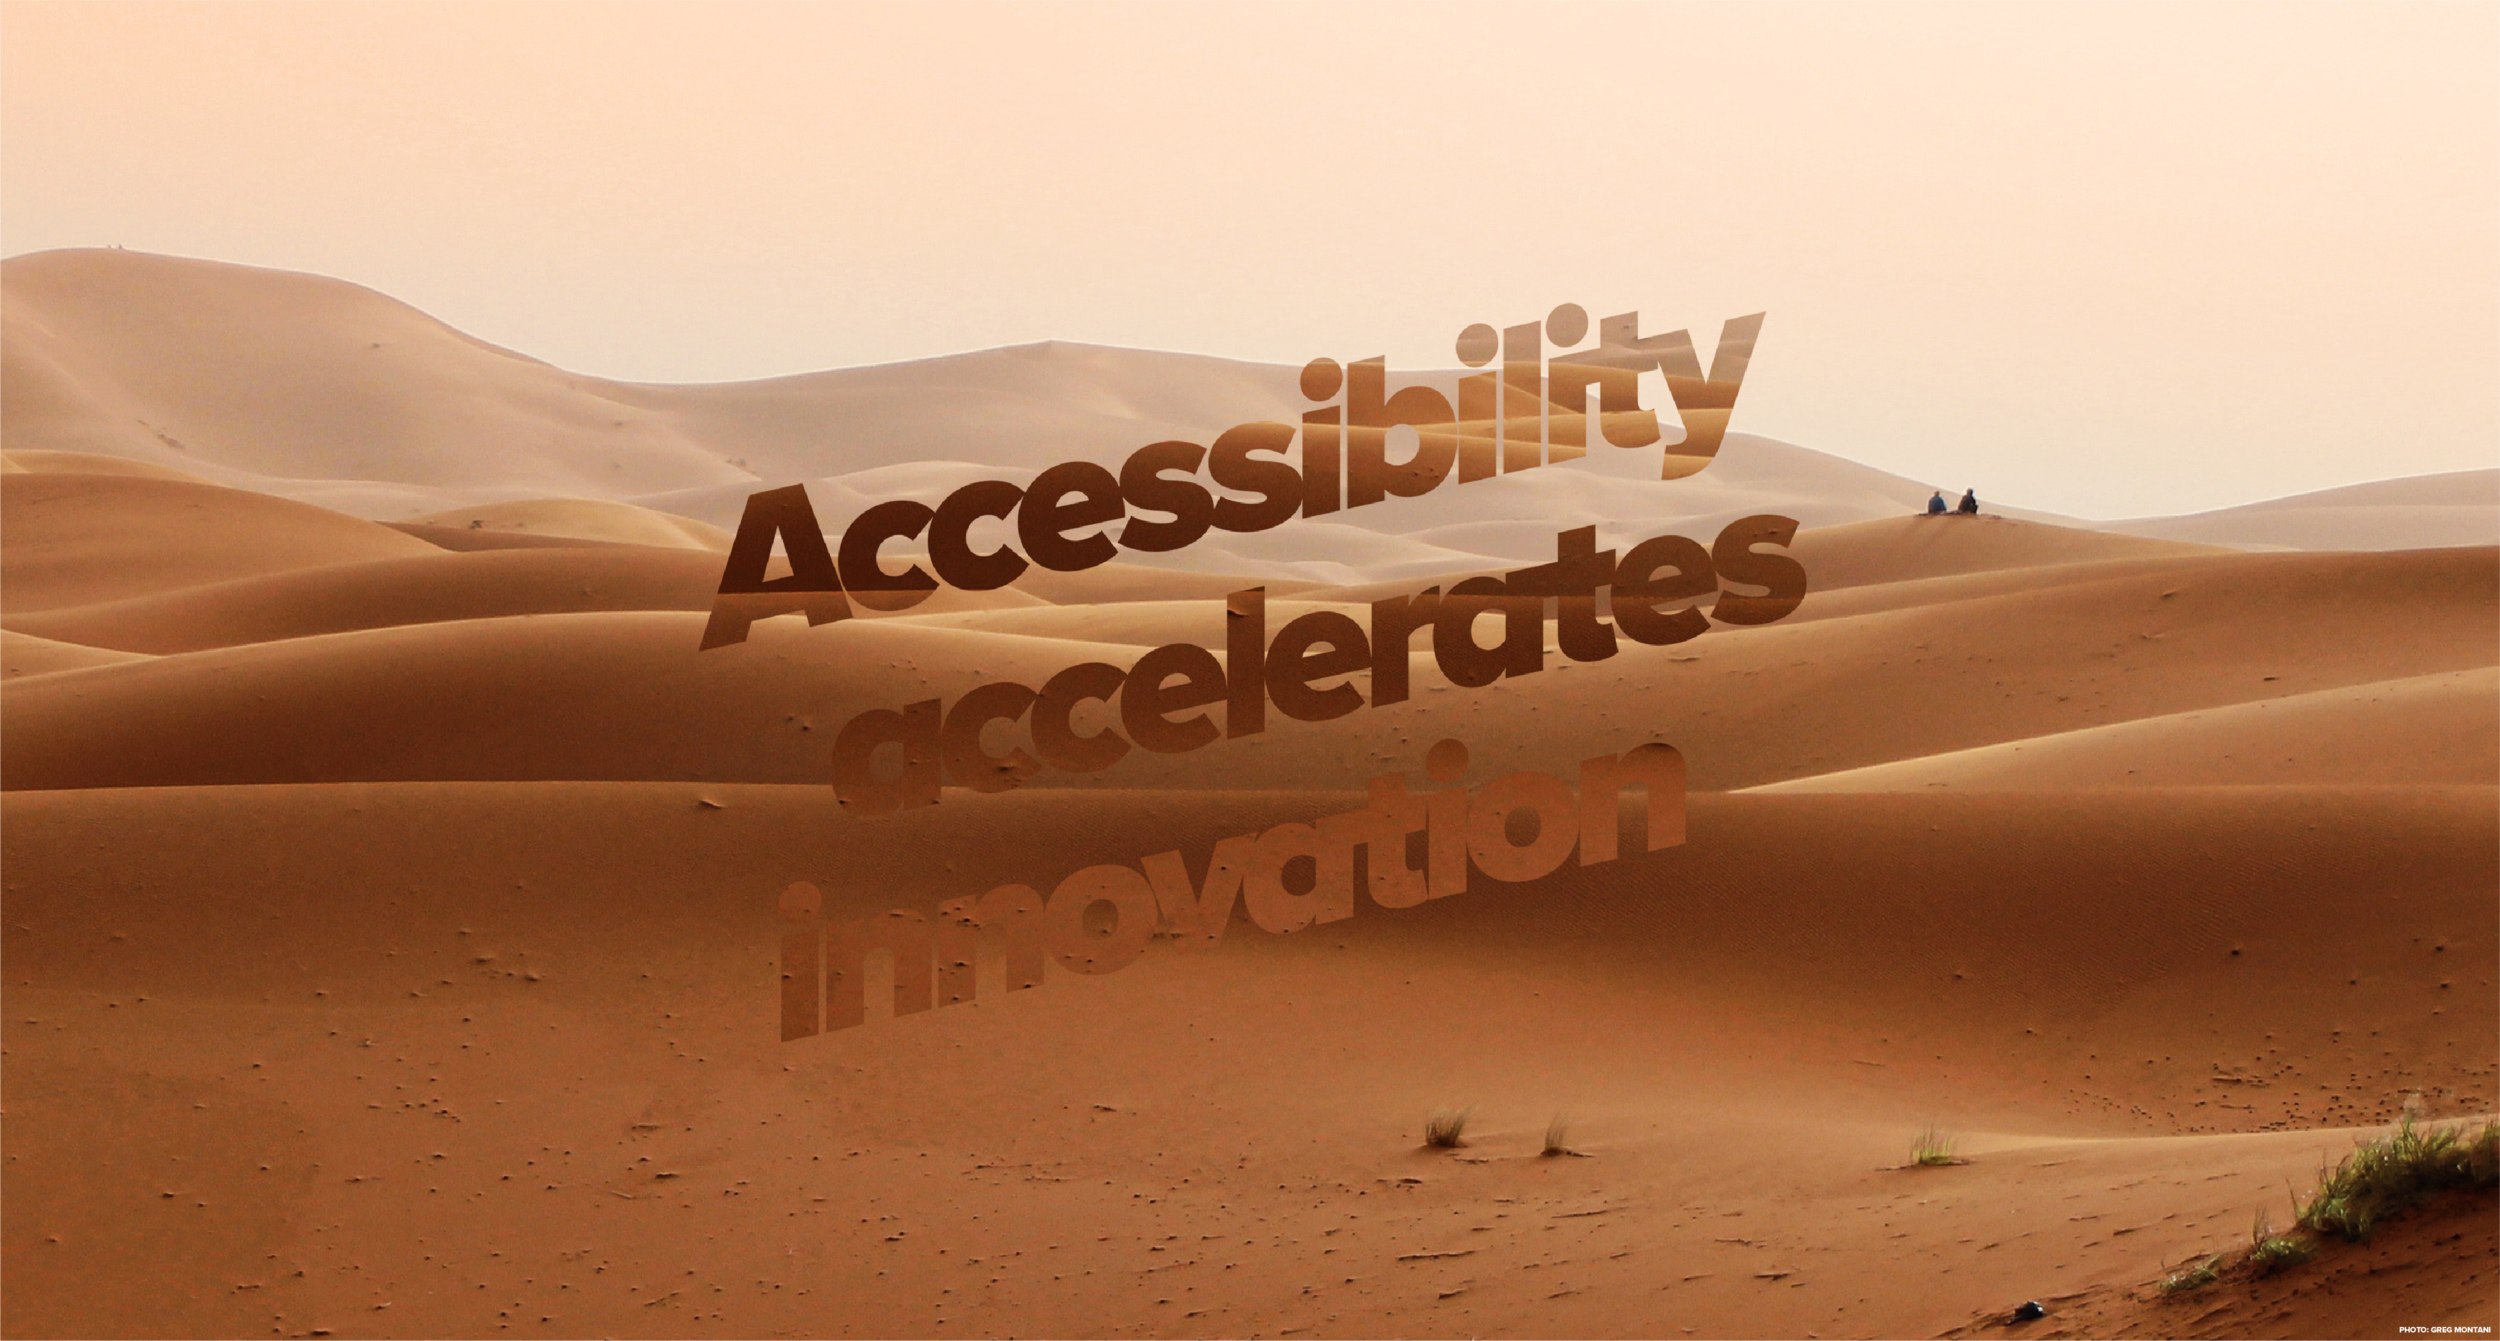 Accessibility accelerates innovation